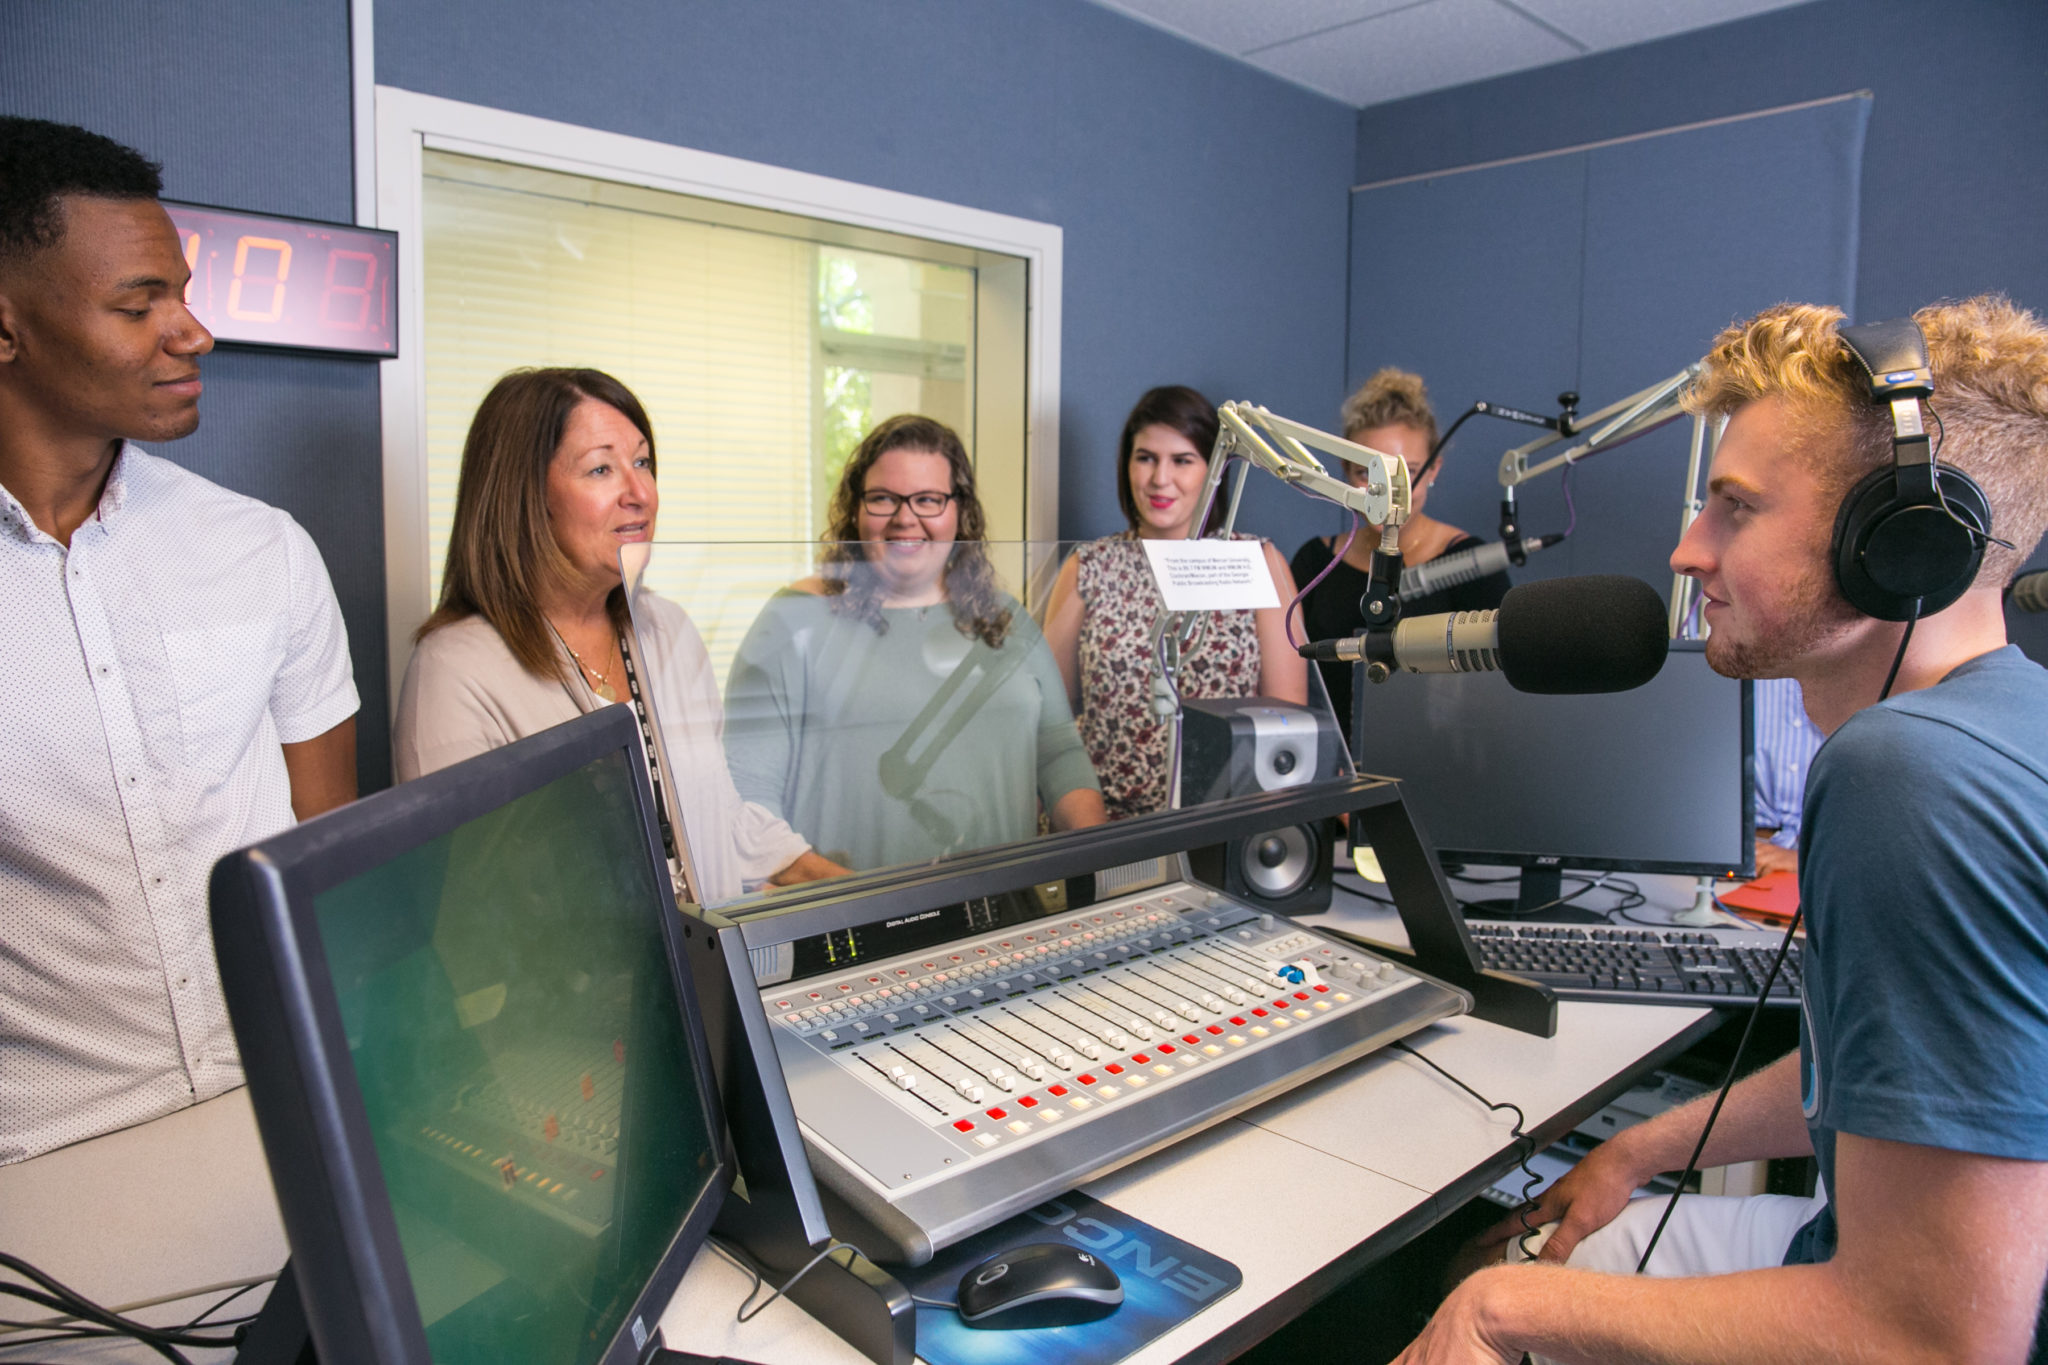 Students at Georgia Public Broadcasting